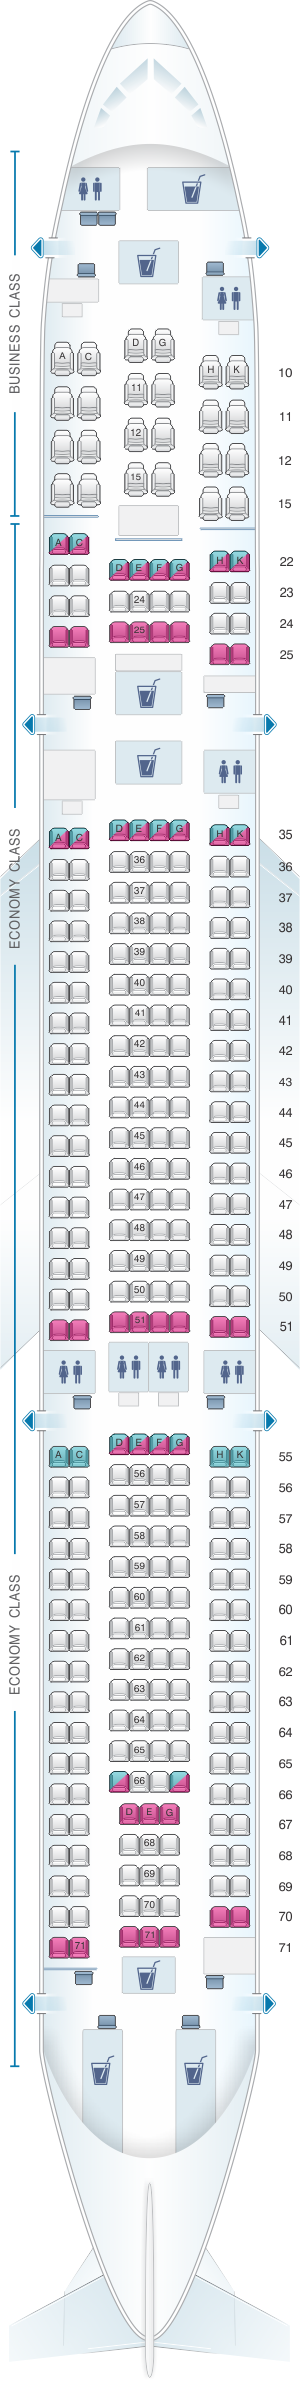 Seat map for Cathay Pacific Airways Cathay Dragon Airbus A330 300 (A33H)